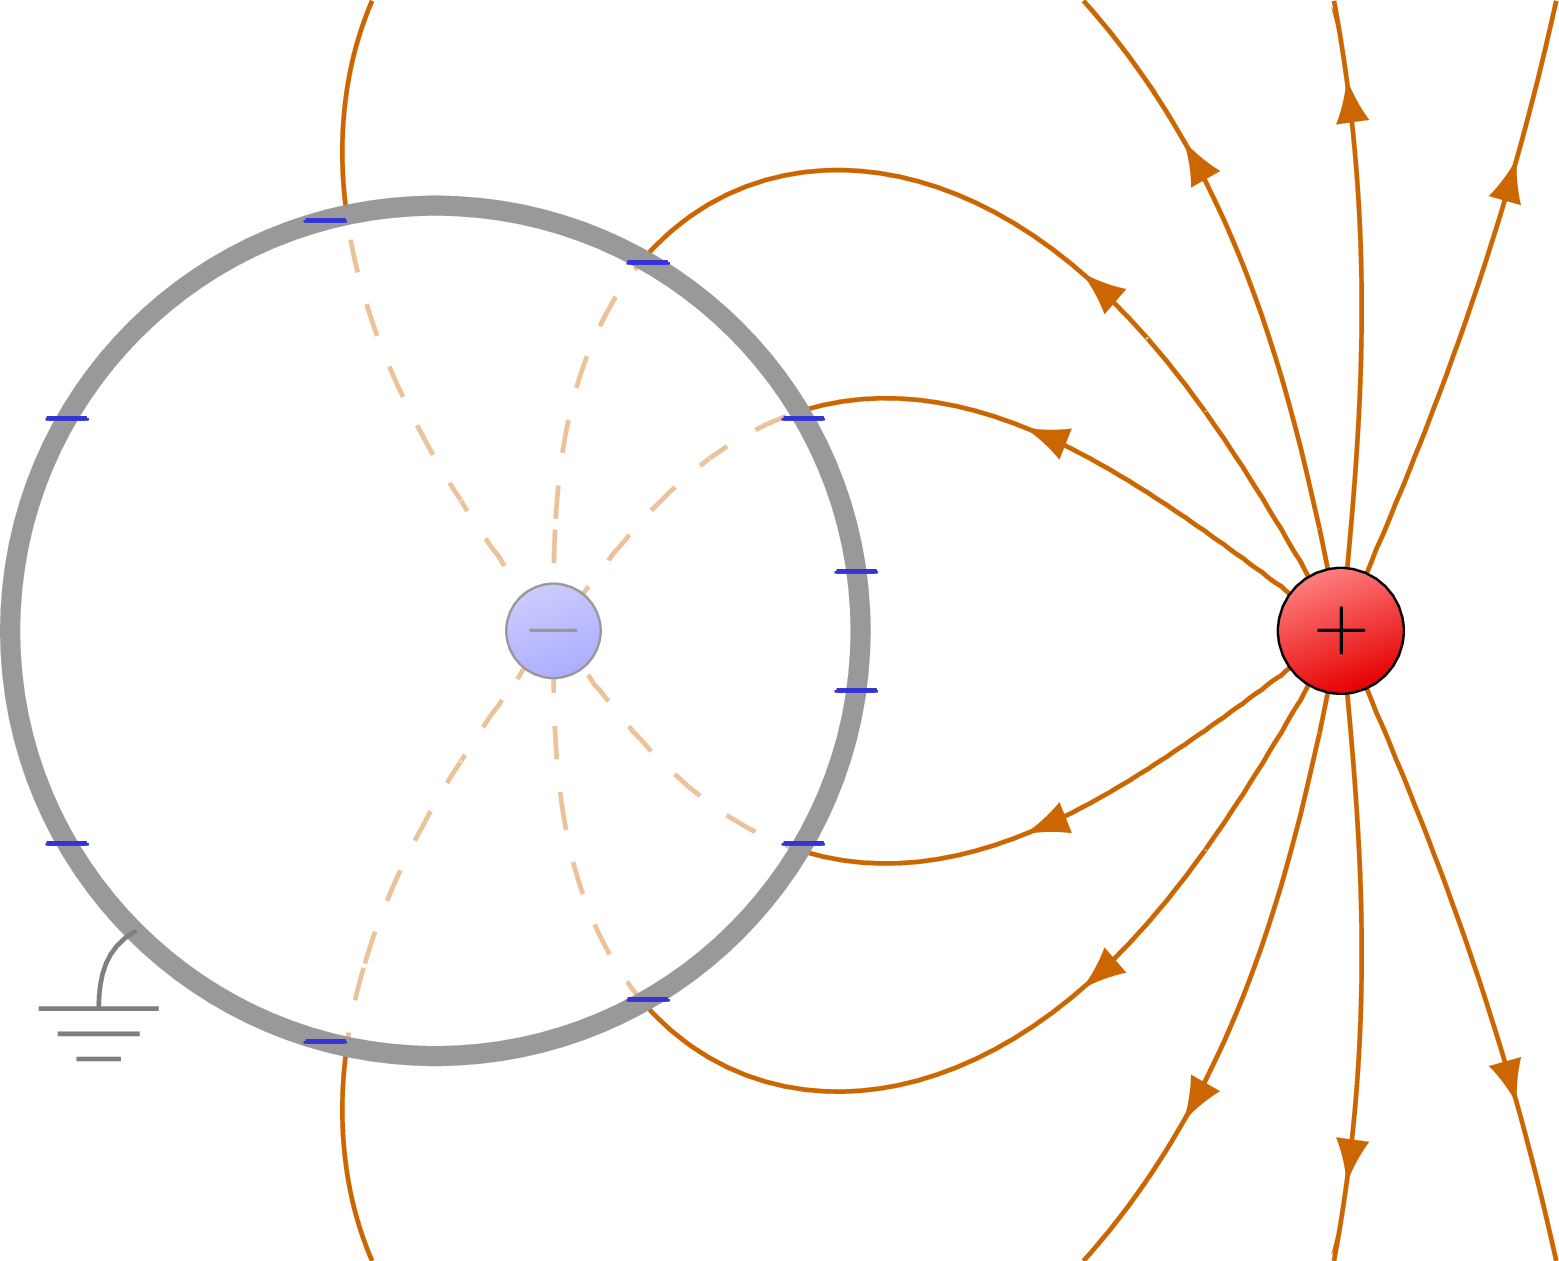 electric_field_image_charge_sphere-002.png